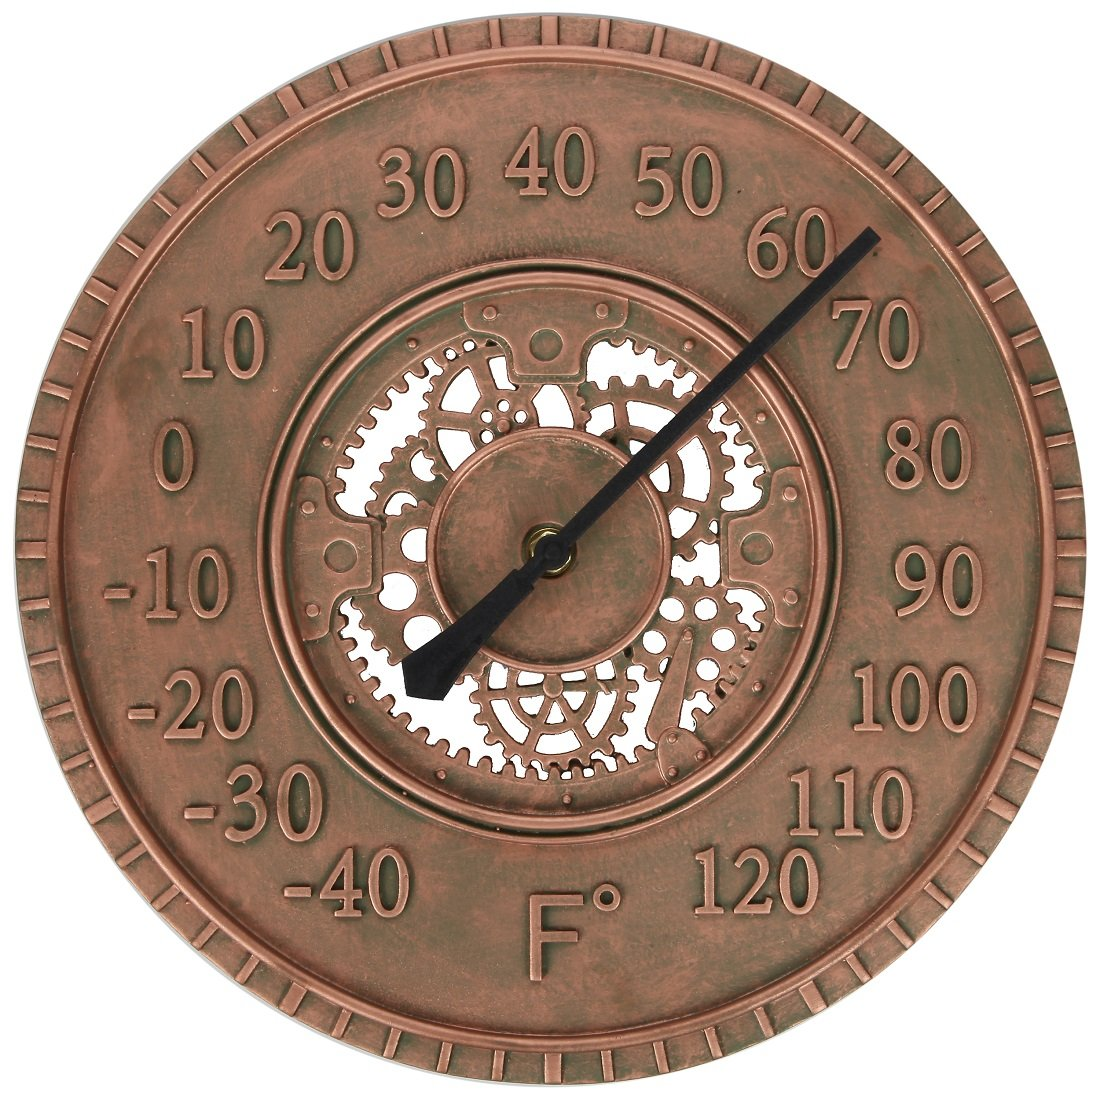 Lily's Home Hanging Wall Thermometer, Steampunk Gear and Cog Design with a Bronze Finish, Ideal for Indoor or Outdoor Use, Poly-Resin (13 Inches Diameter) Lily's Home SW1067